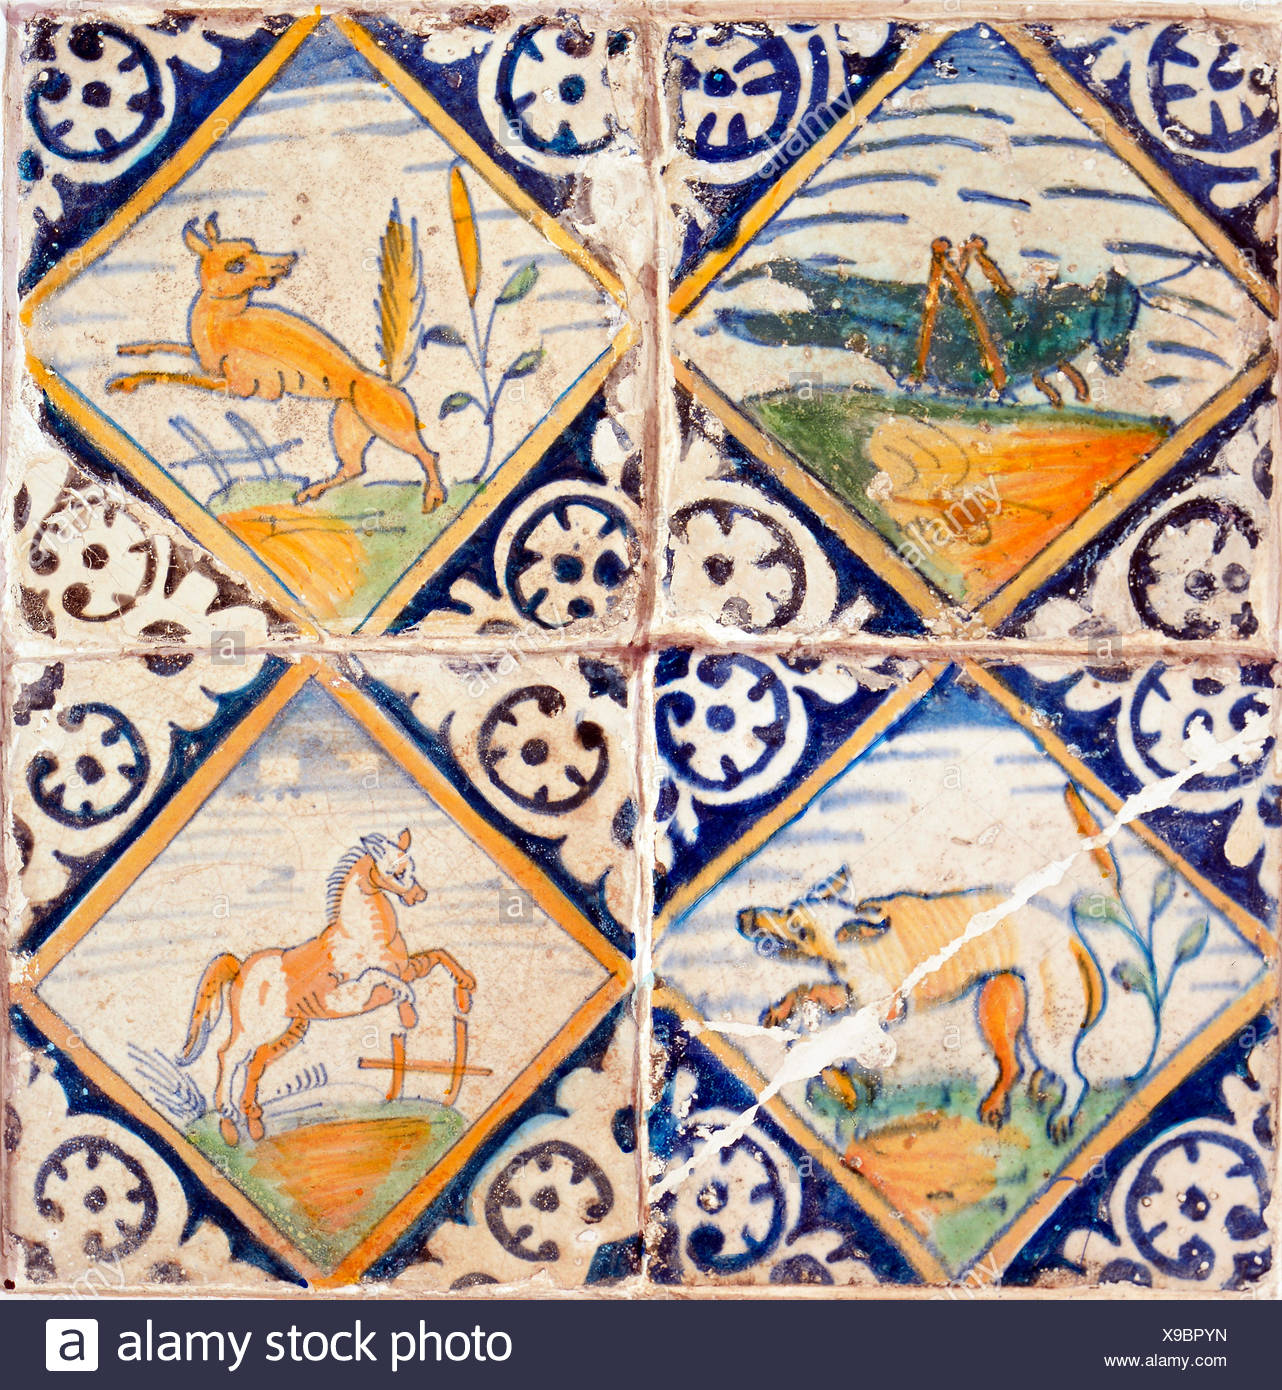 fine arts, decorative tiles, tiles with animal illustrations, Delft, 16th century, 13 x 13 cm, Instituut Collectie Nederland, Artist's Copyright has not to be cleared - Stock Image